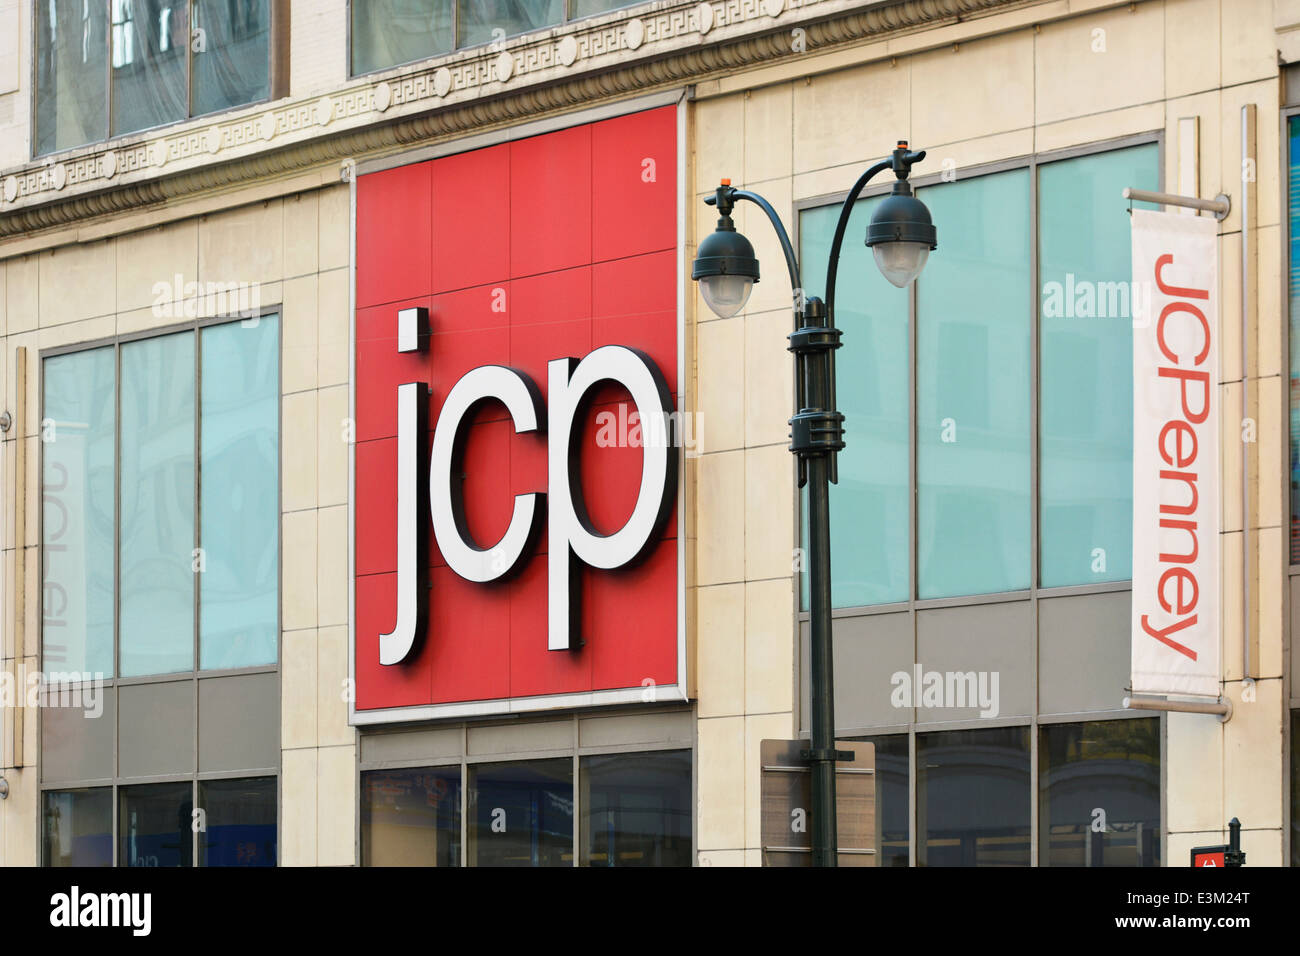 JC Penney, J.C. Penney Department Store, New York - Stock Image